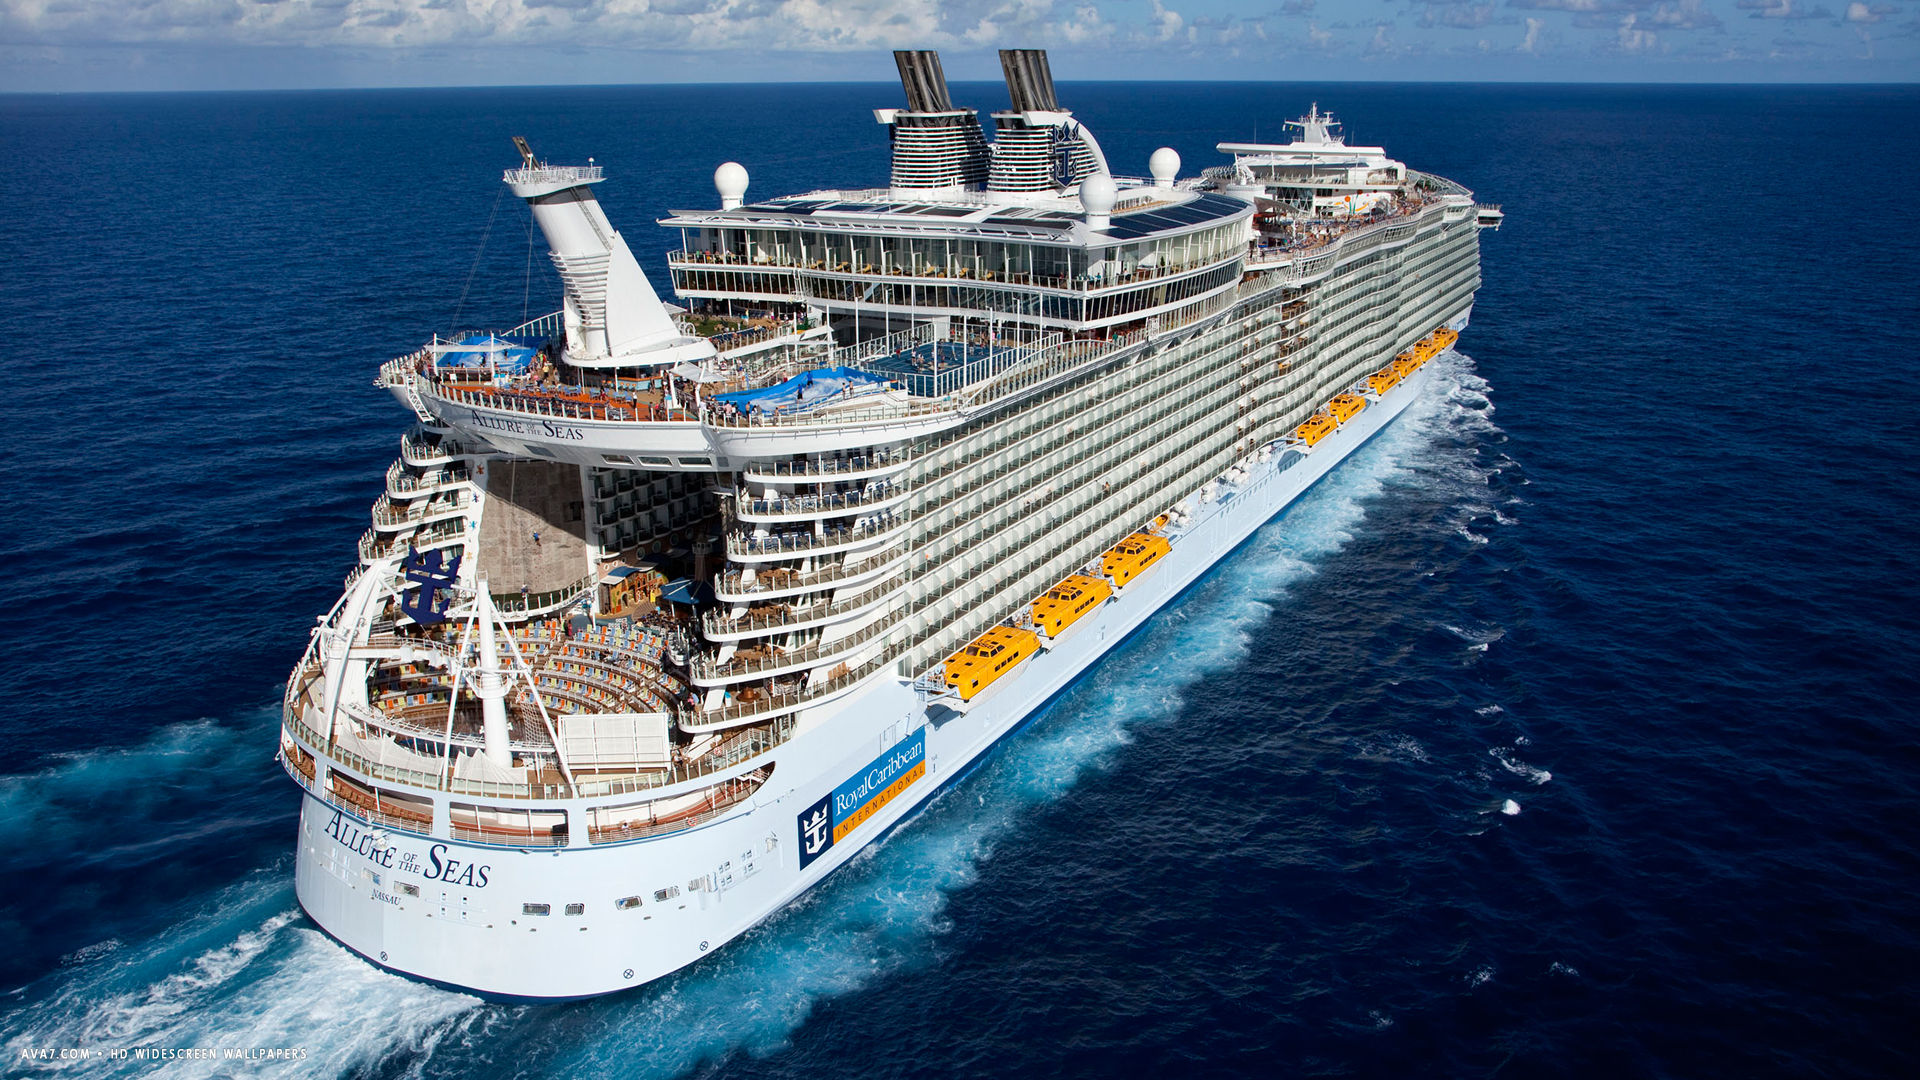 Allure of the seas kosten